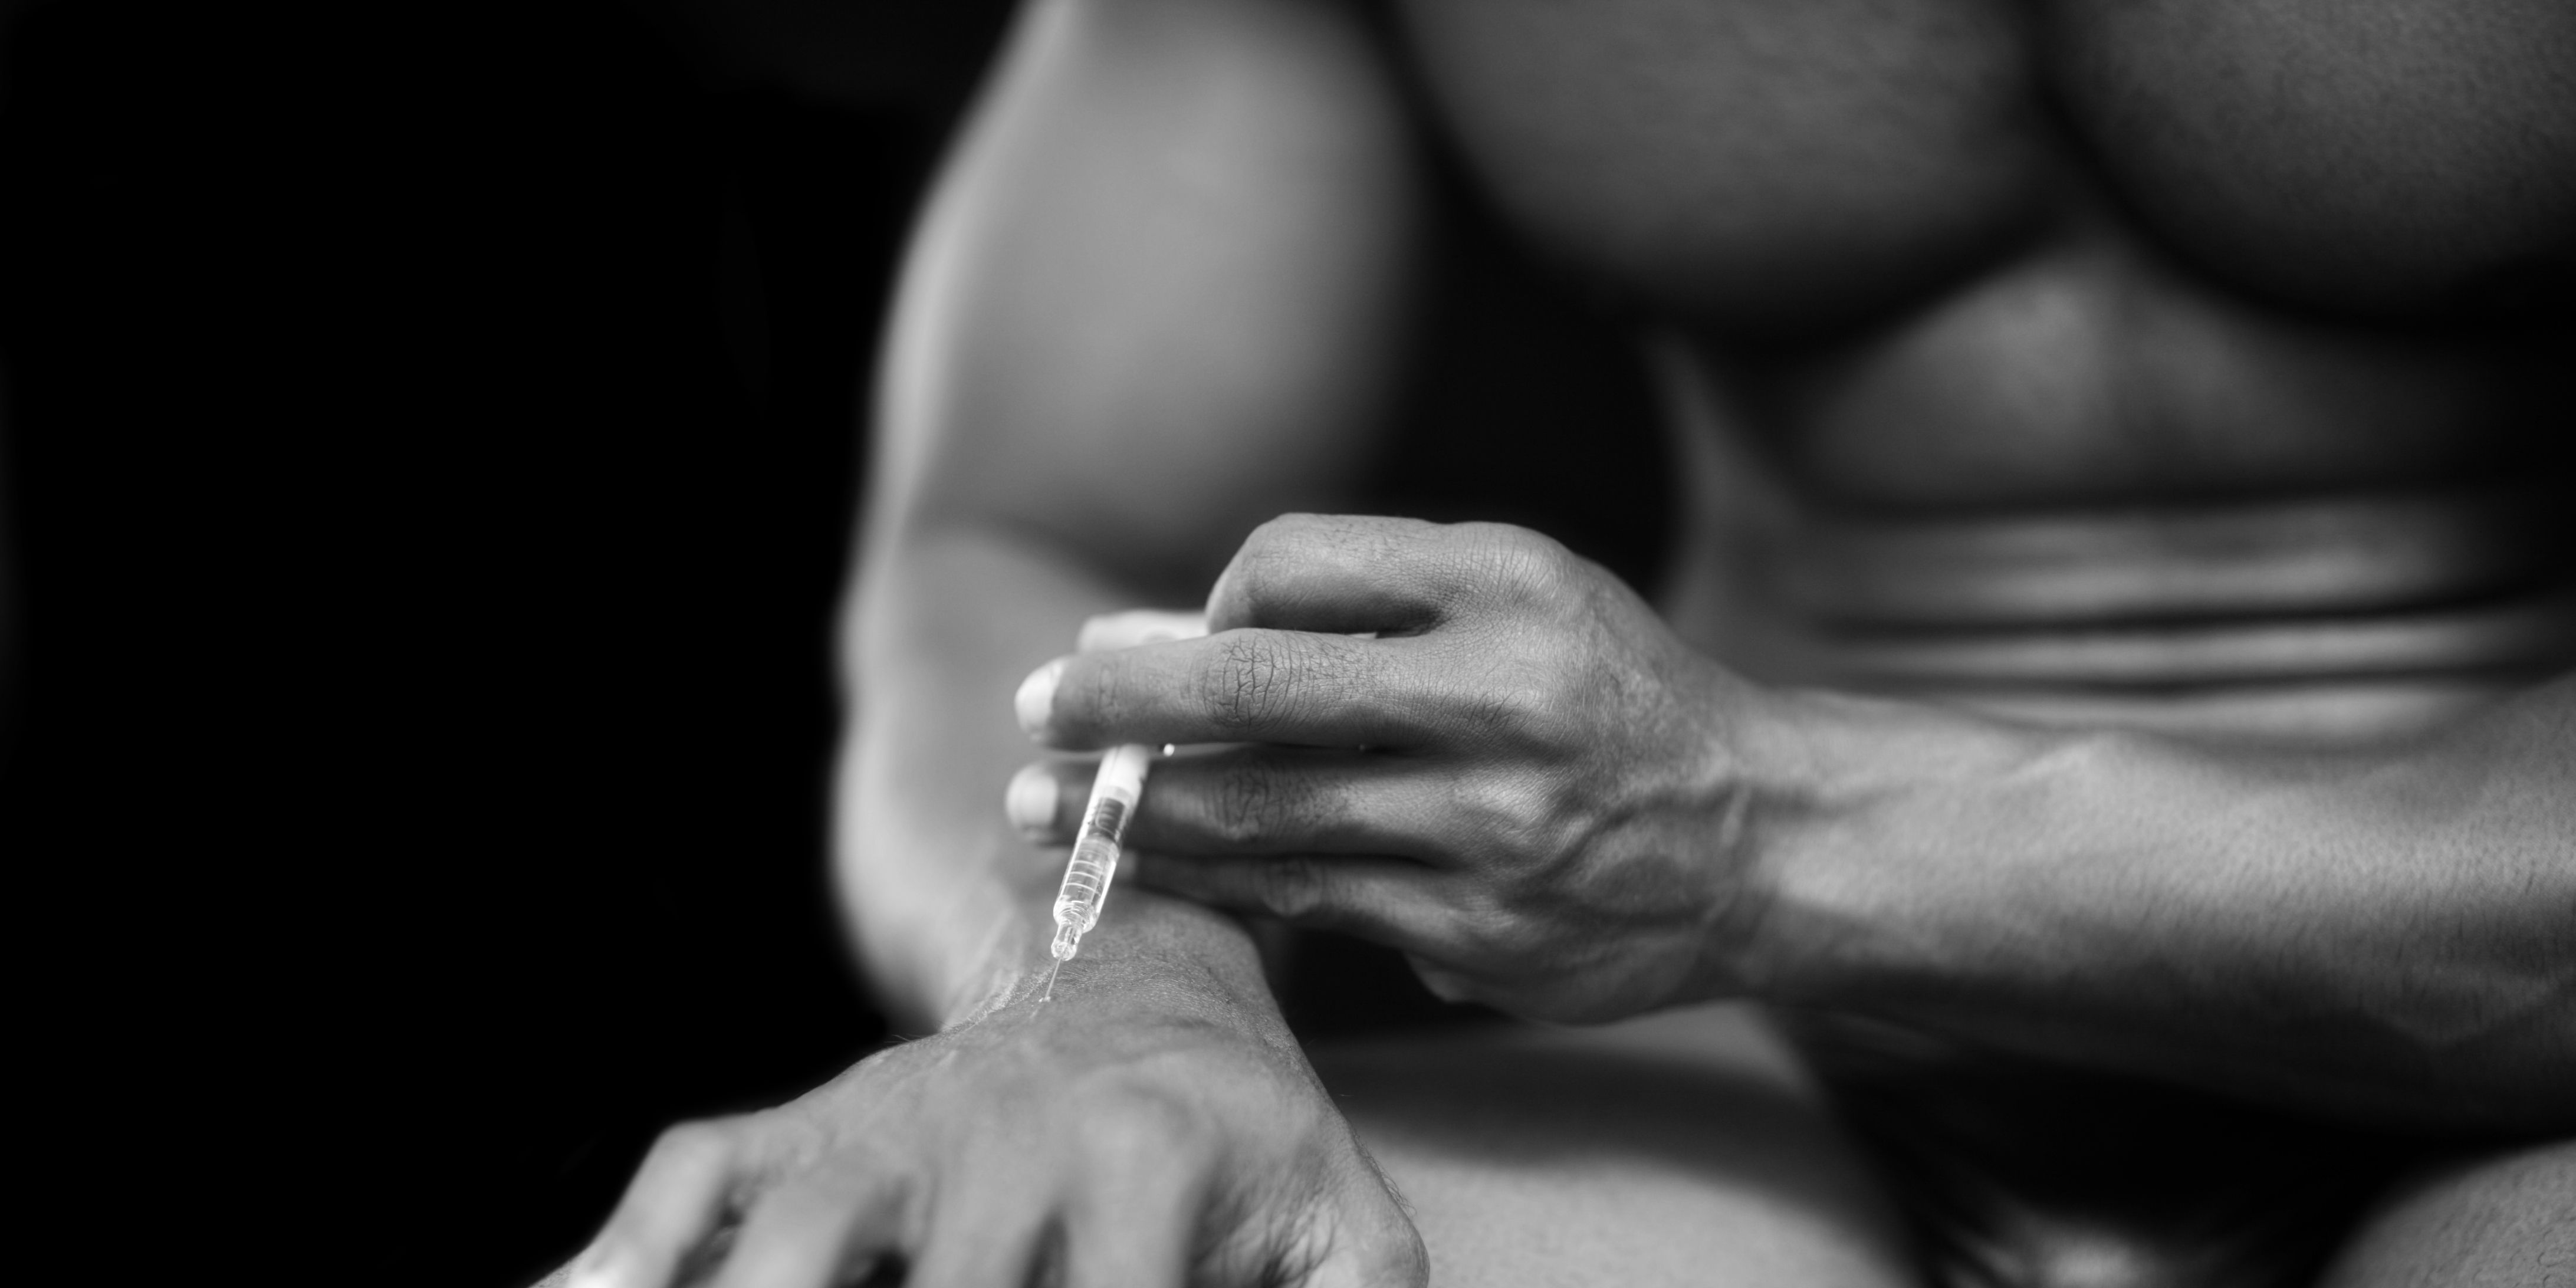 injecting steroids or drugs